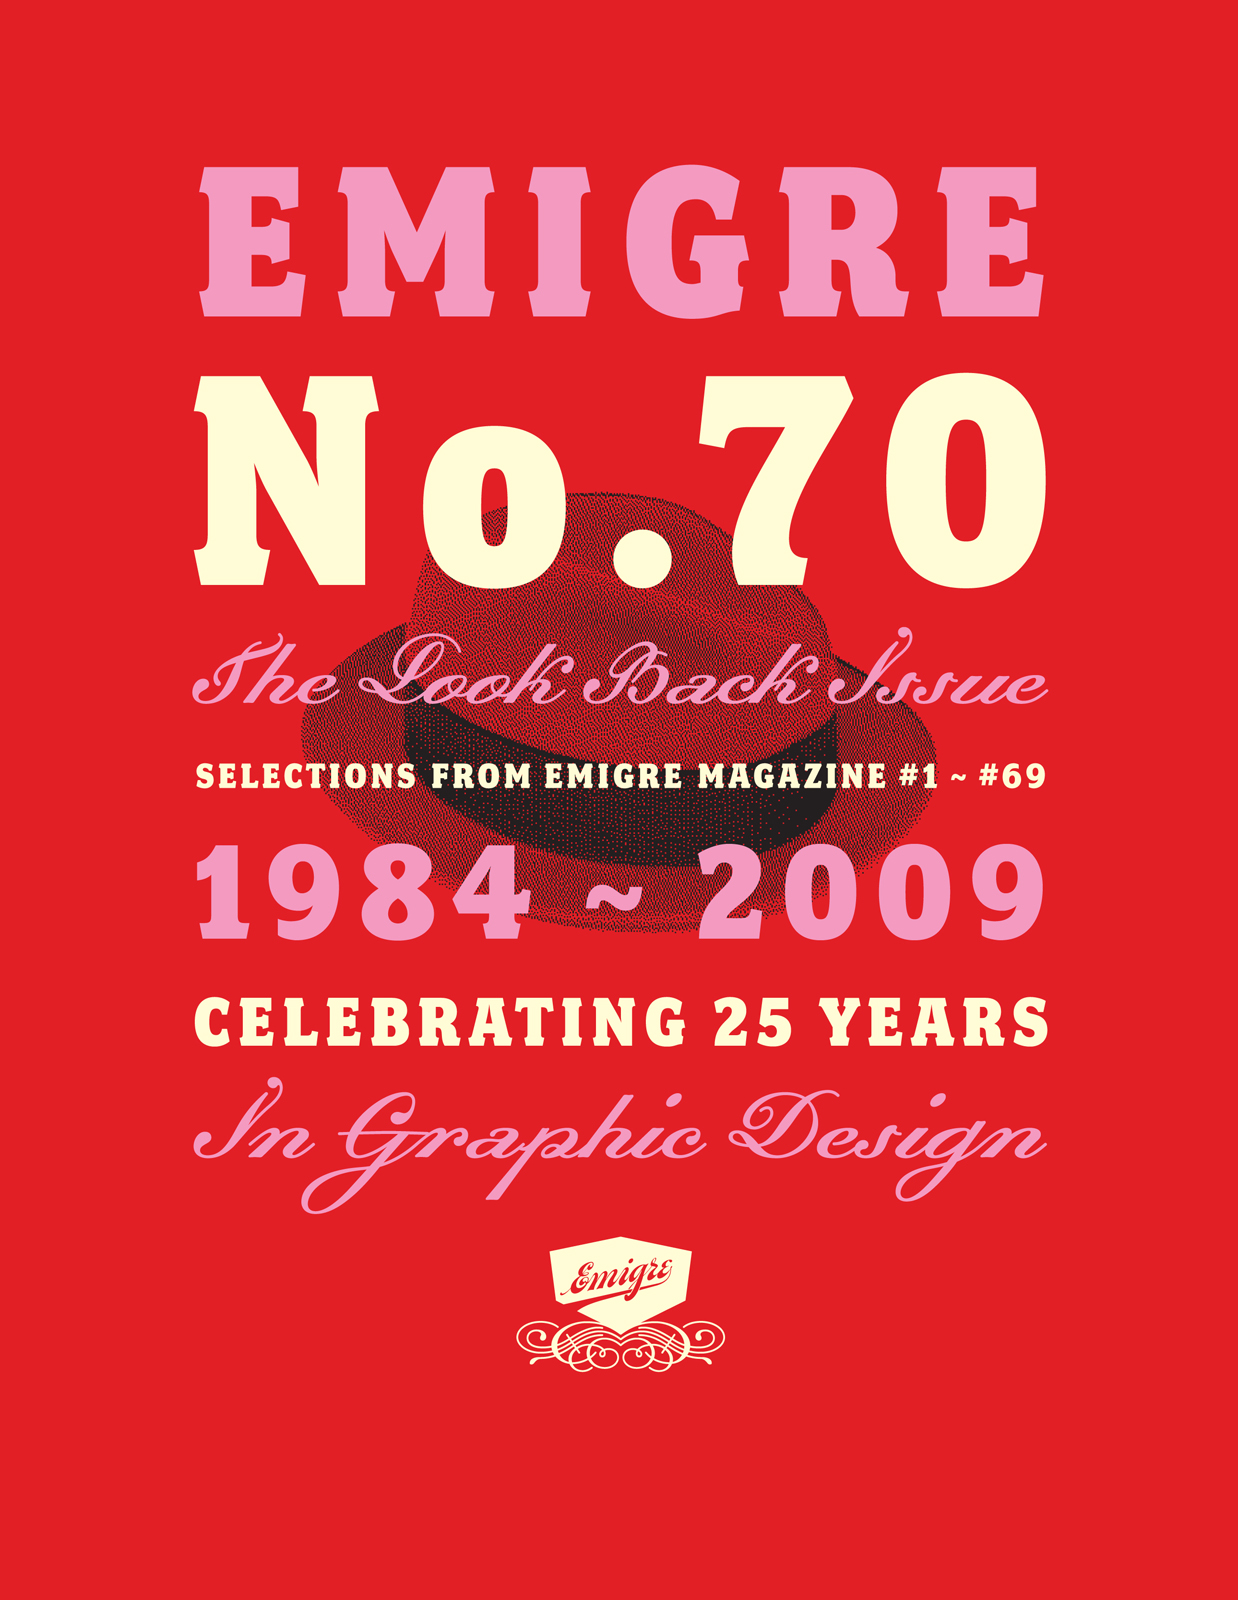 """The cover of <i><a href=""""http://www.dwell.com/articles/emigre-no-70.html"""">Emigre No. 70: The Look Back Issue, 25 Years Years in Graphic Design</a></i>. San Francisco's Gallery 16 celebrates the publication and foundry in its exhibit <i>Emigre at Gallery 1"""